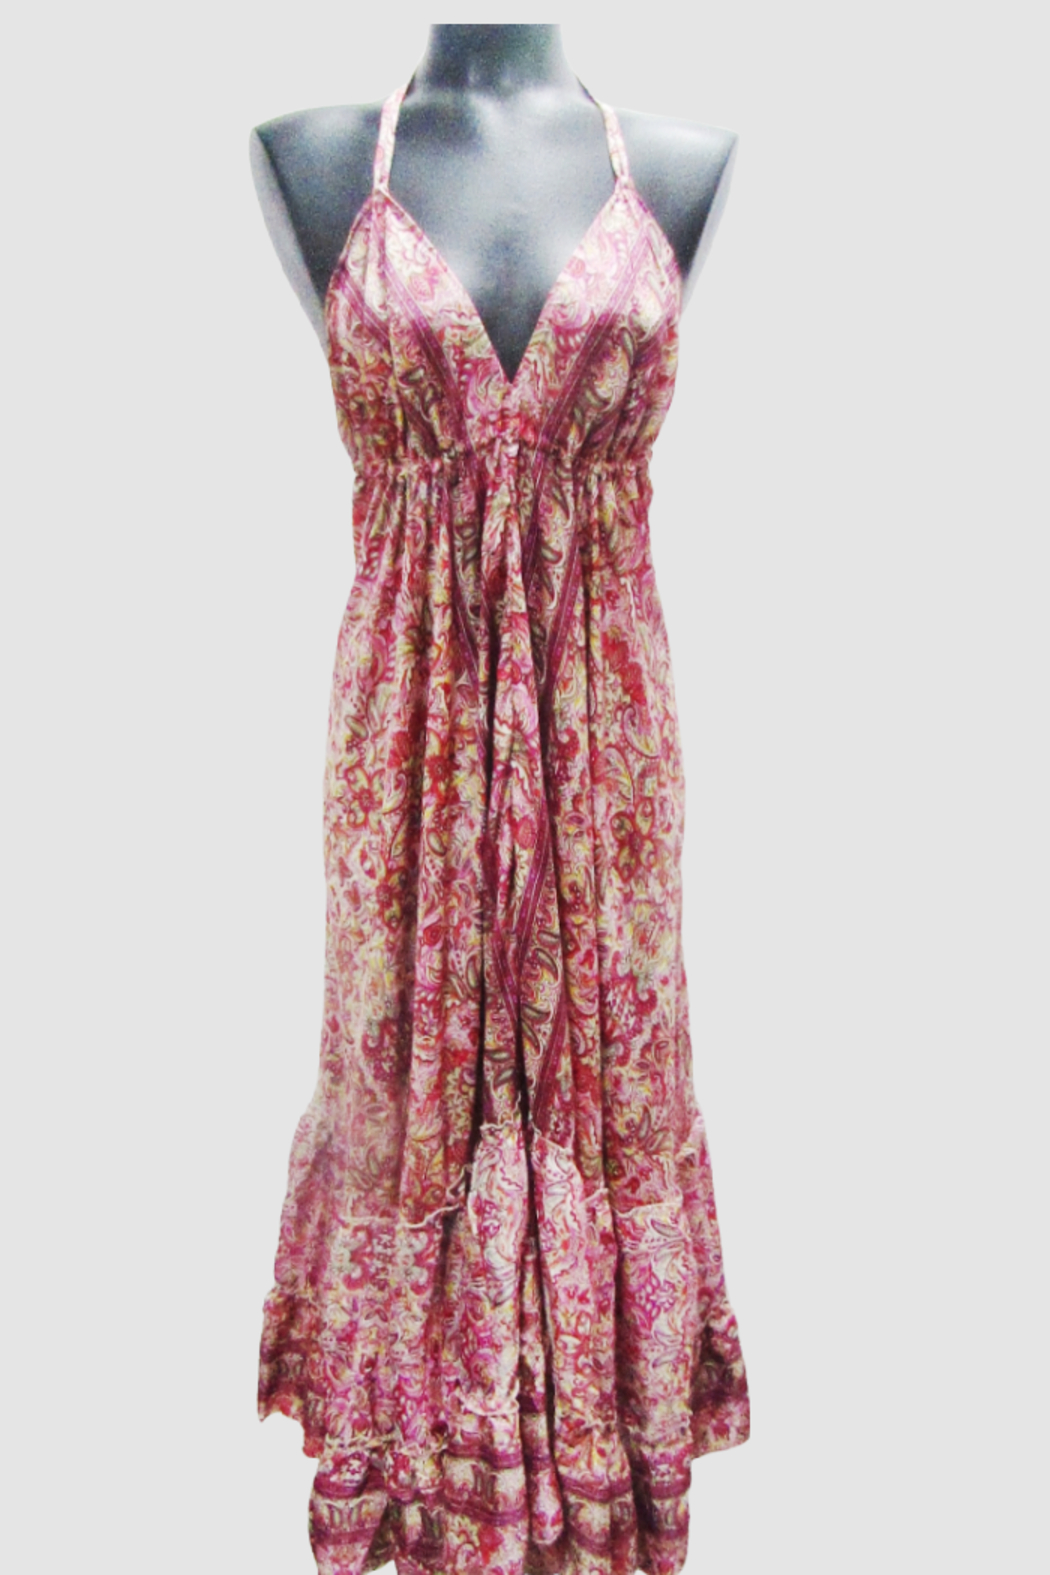 India Boutique Bohemian Rhapsody Halter Dress - Pink/Red Paisley - Main Image